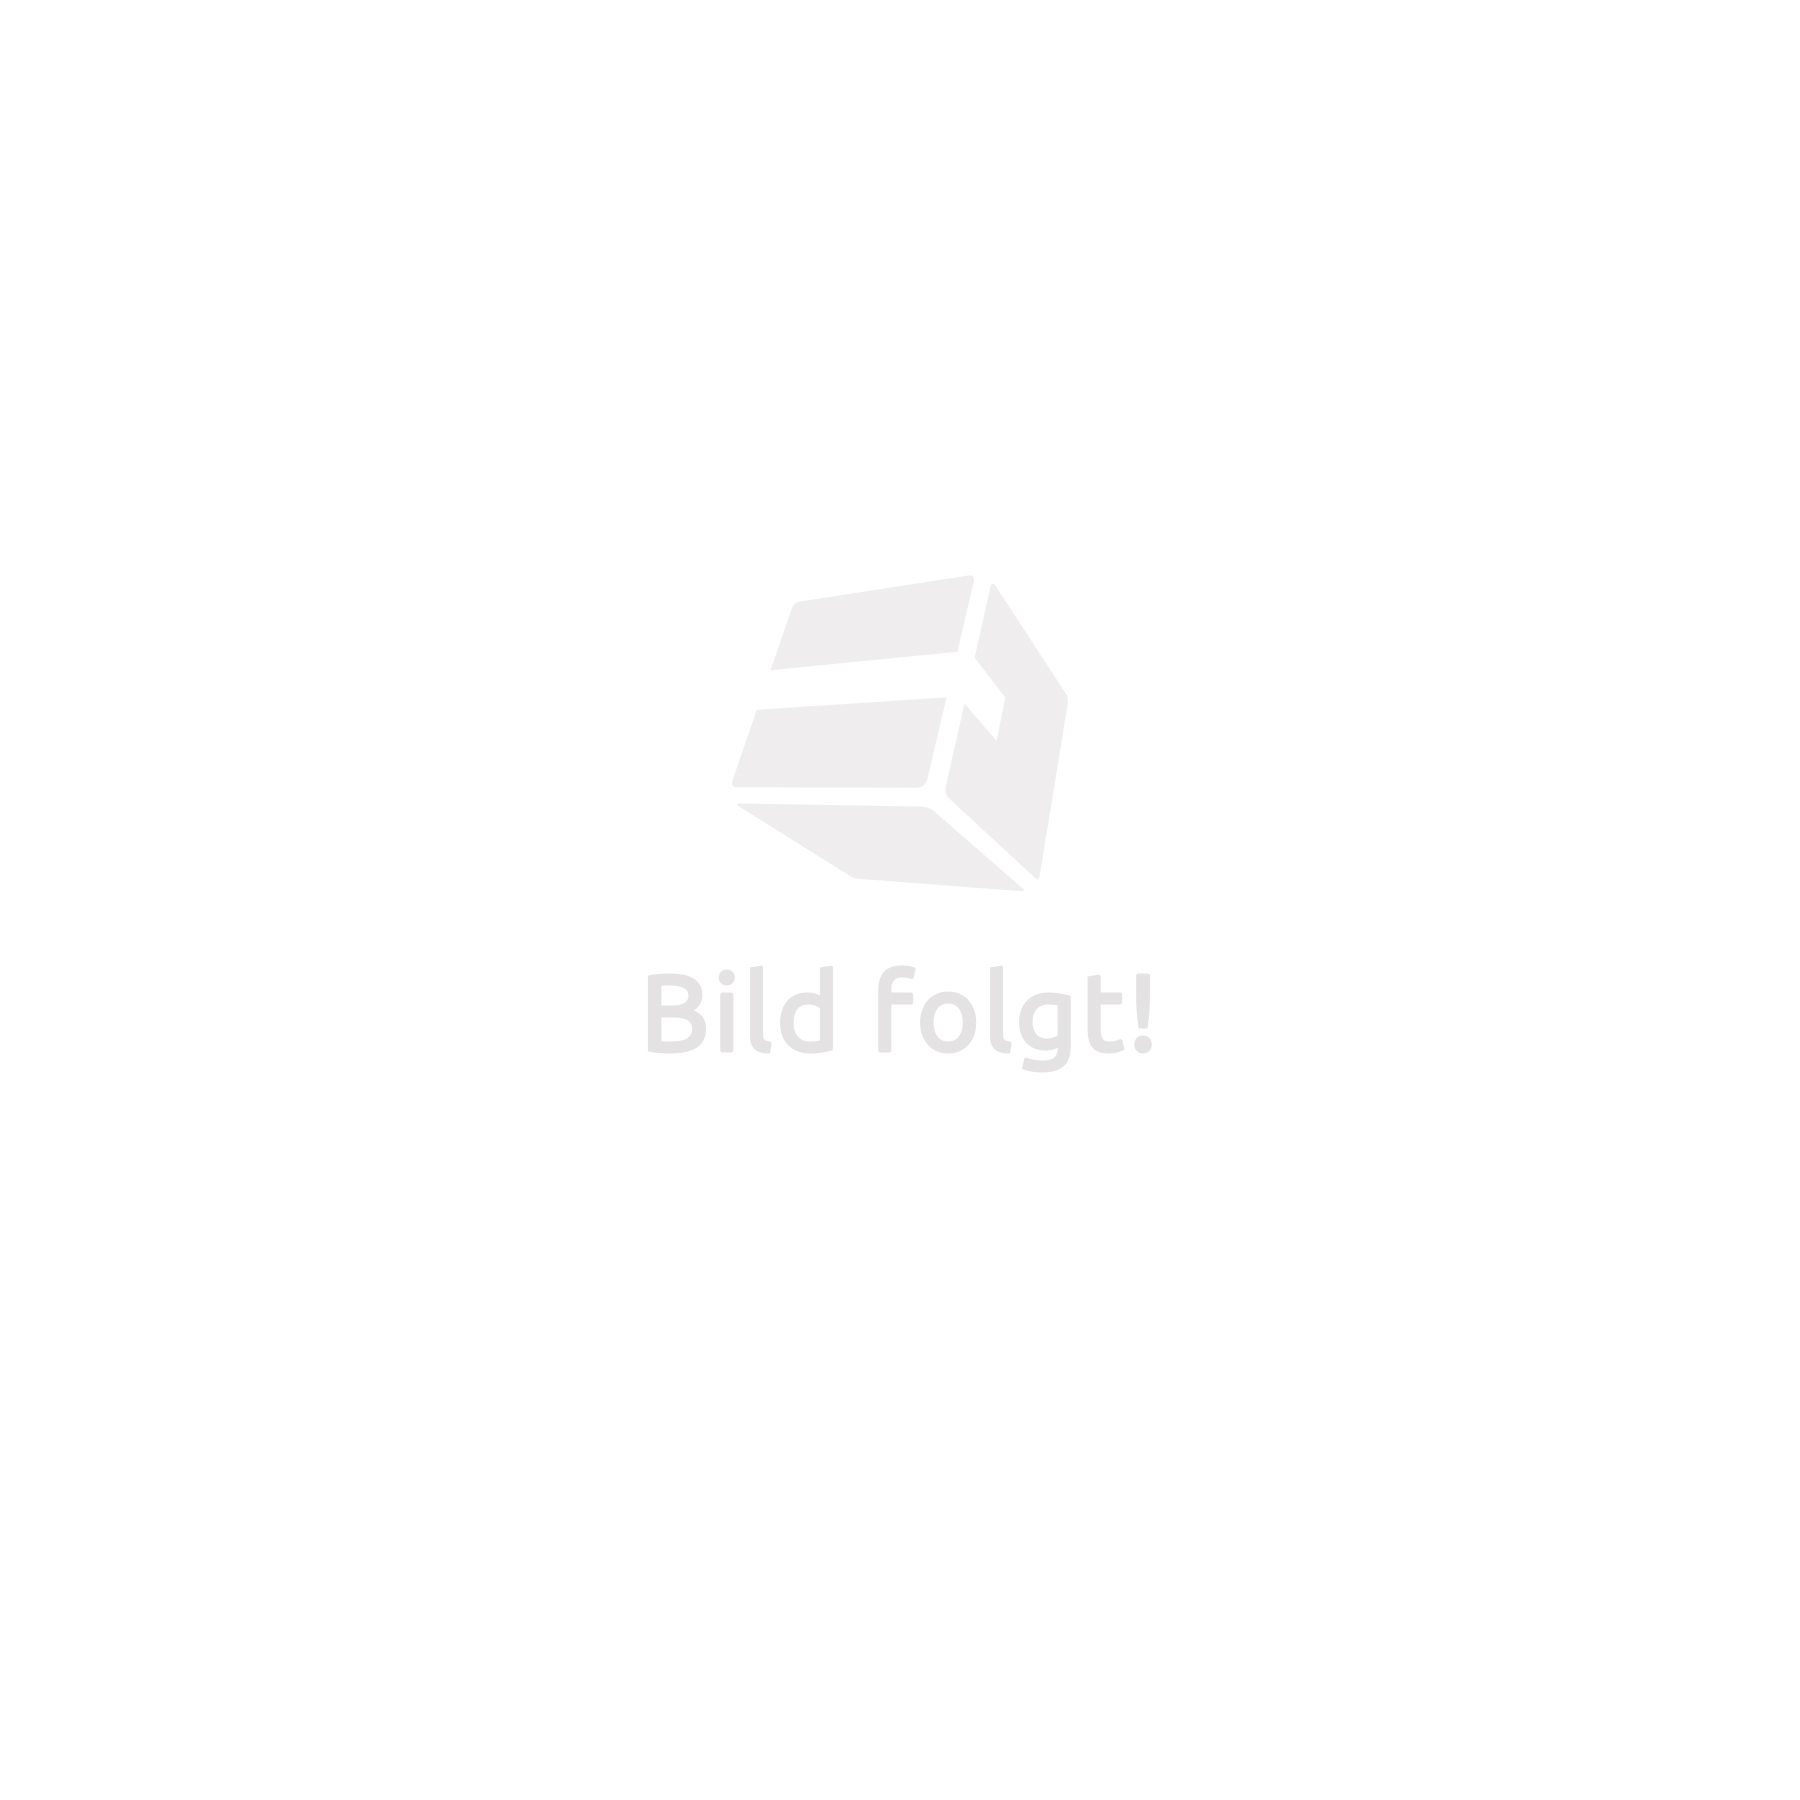 Soporte de pared para monitores de 32-60″ (81-152cm) inclinable y orientable